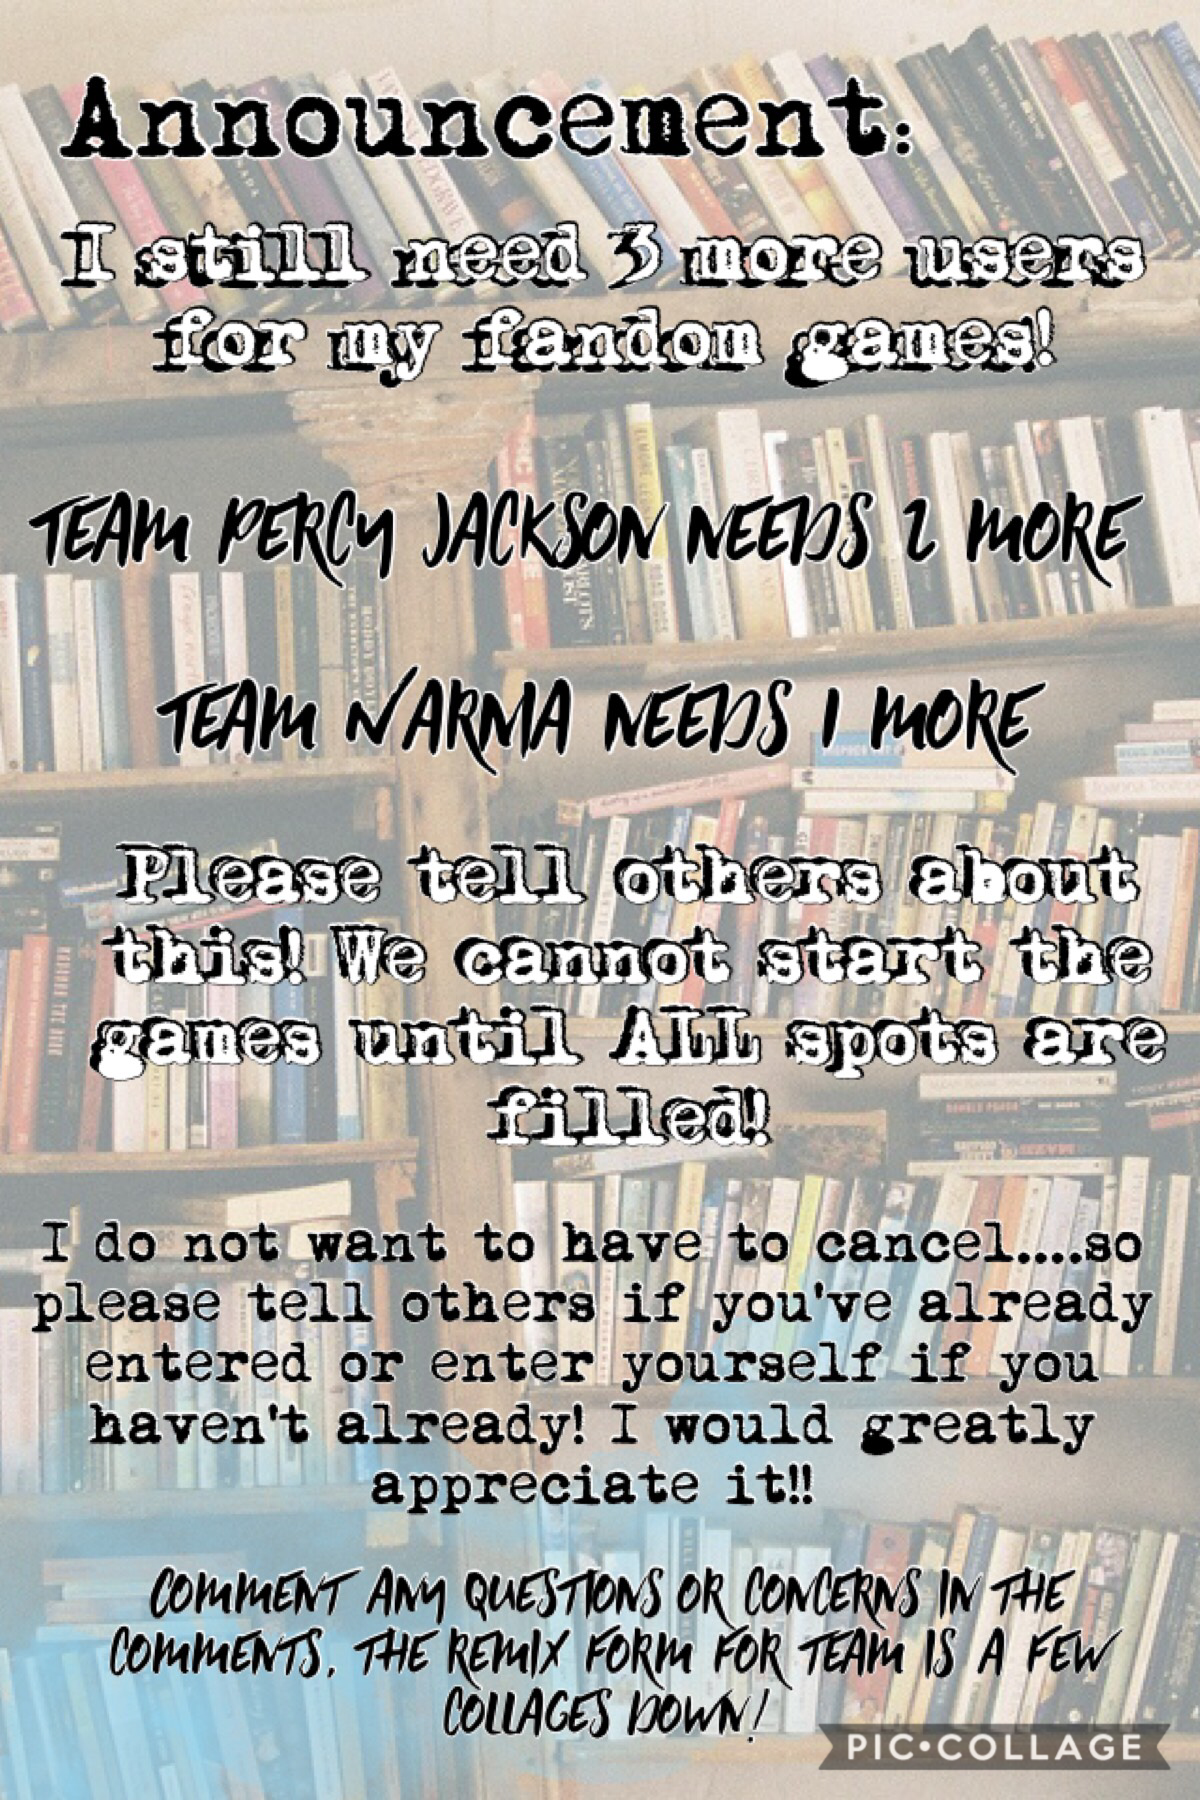 I STILL NEED 3 USERS TO WNTER INTO MY FANDOM GAMES!!  PLEASE TELL YOUR FRIENDS ON PC !💕💕